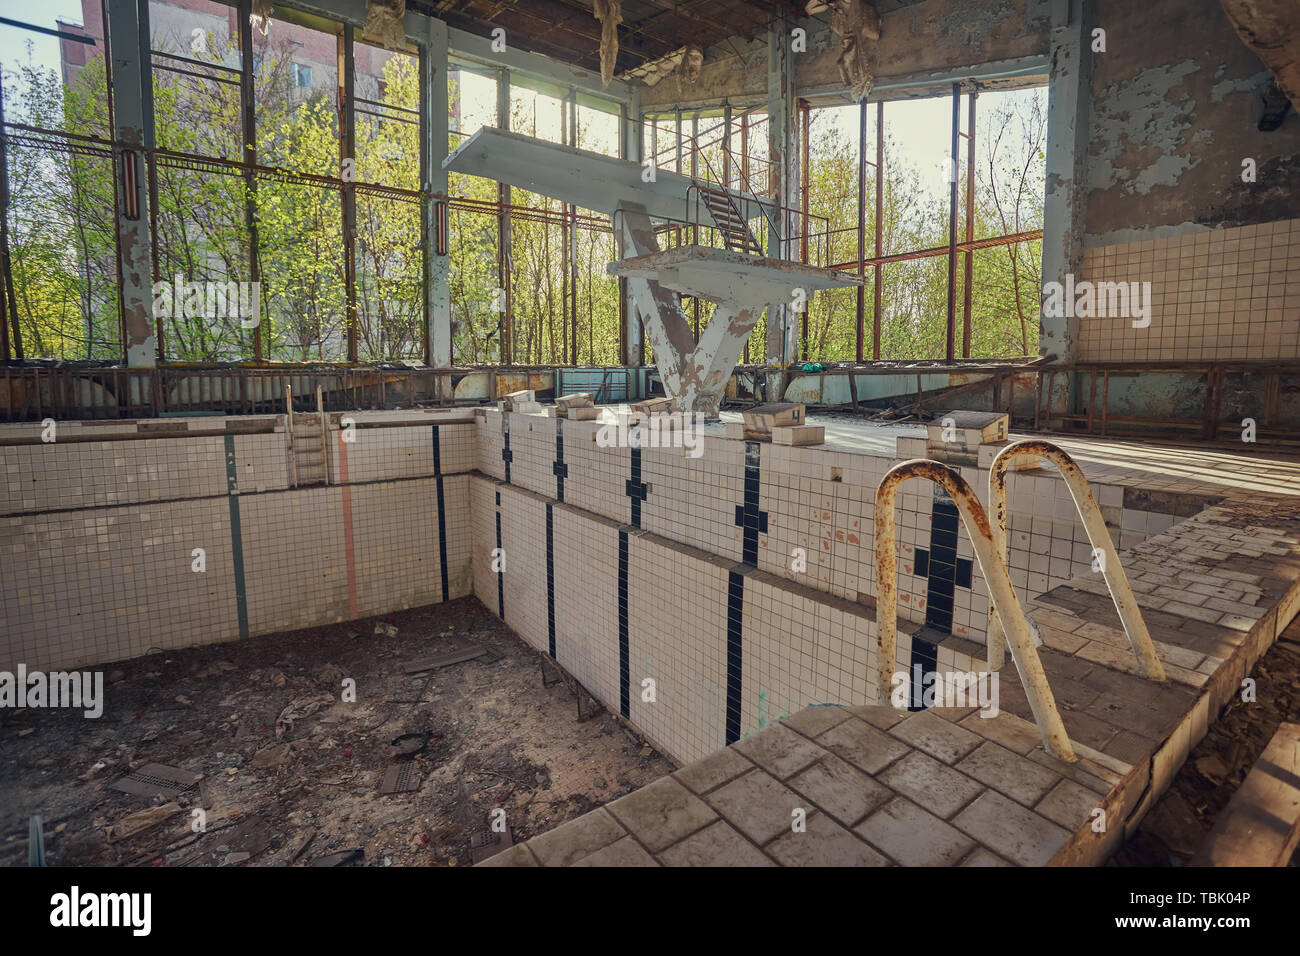 Abandoned Swimming Pool In Pripyat Destroyed Gym In A Radioactive City The Street Is Overgrown With Trees And Bushes Jumping Tamplin Stock Photo Alamy